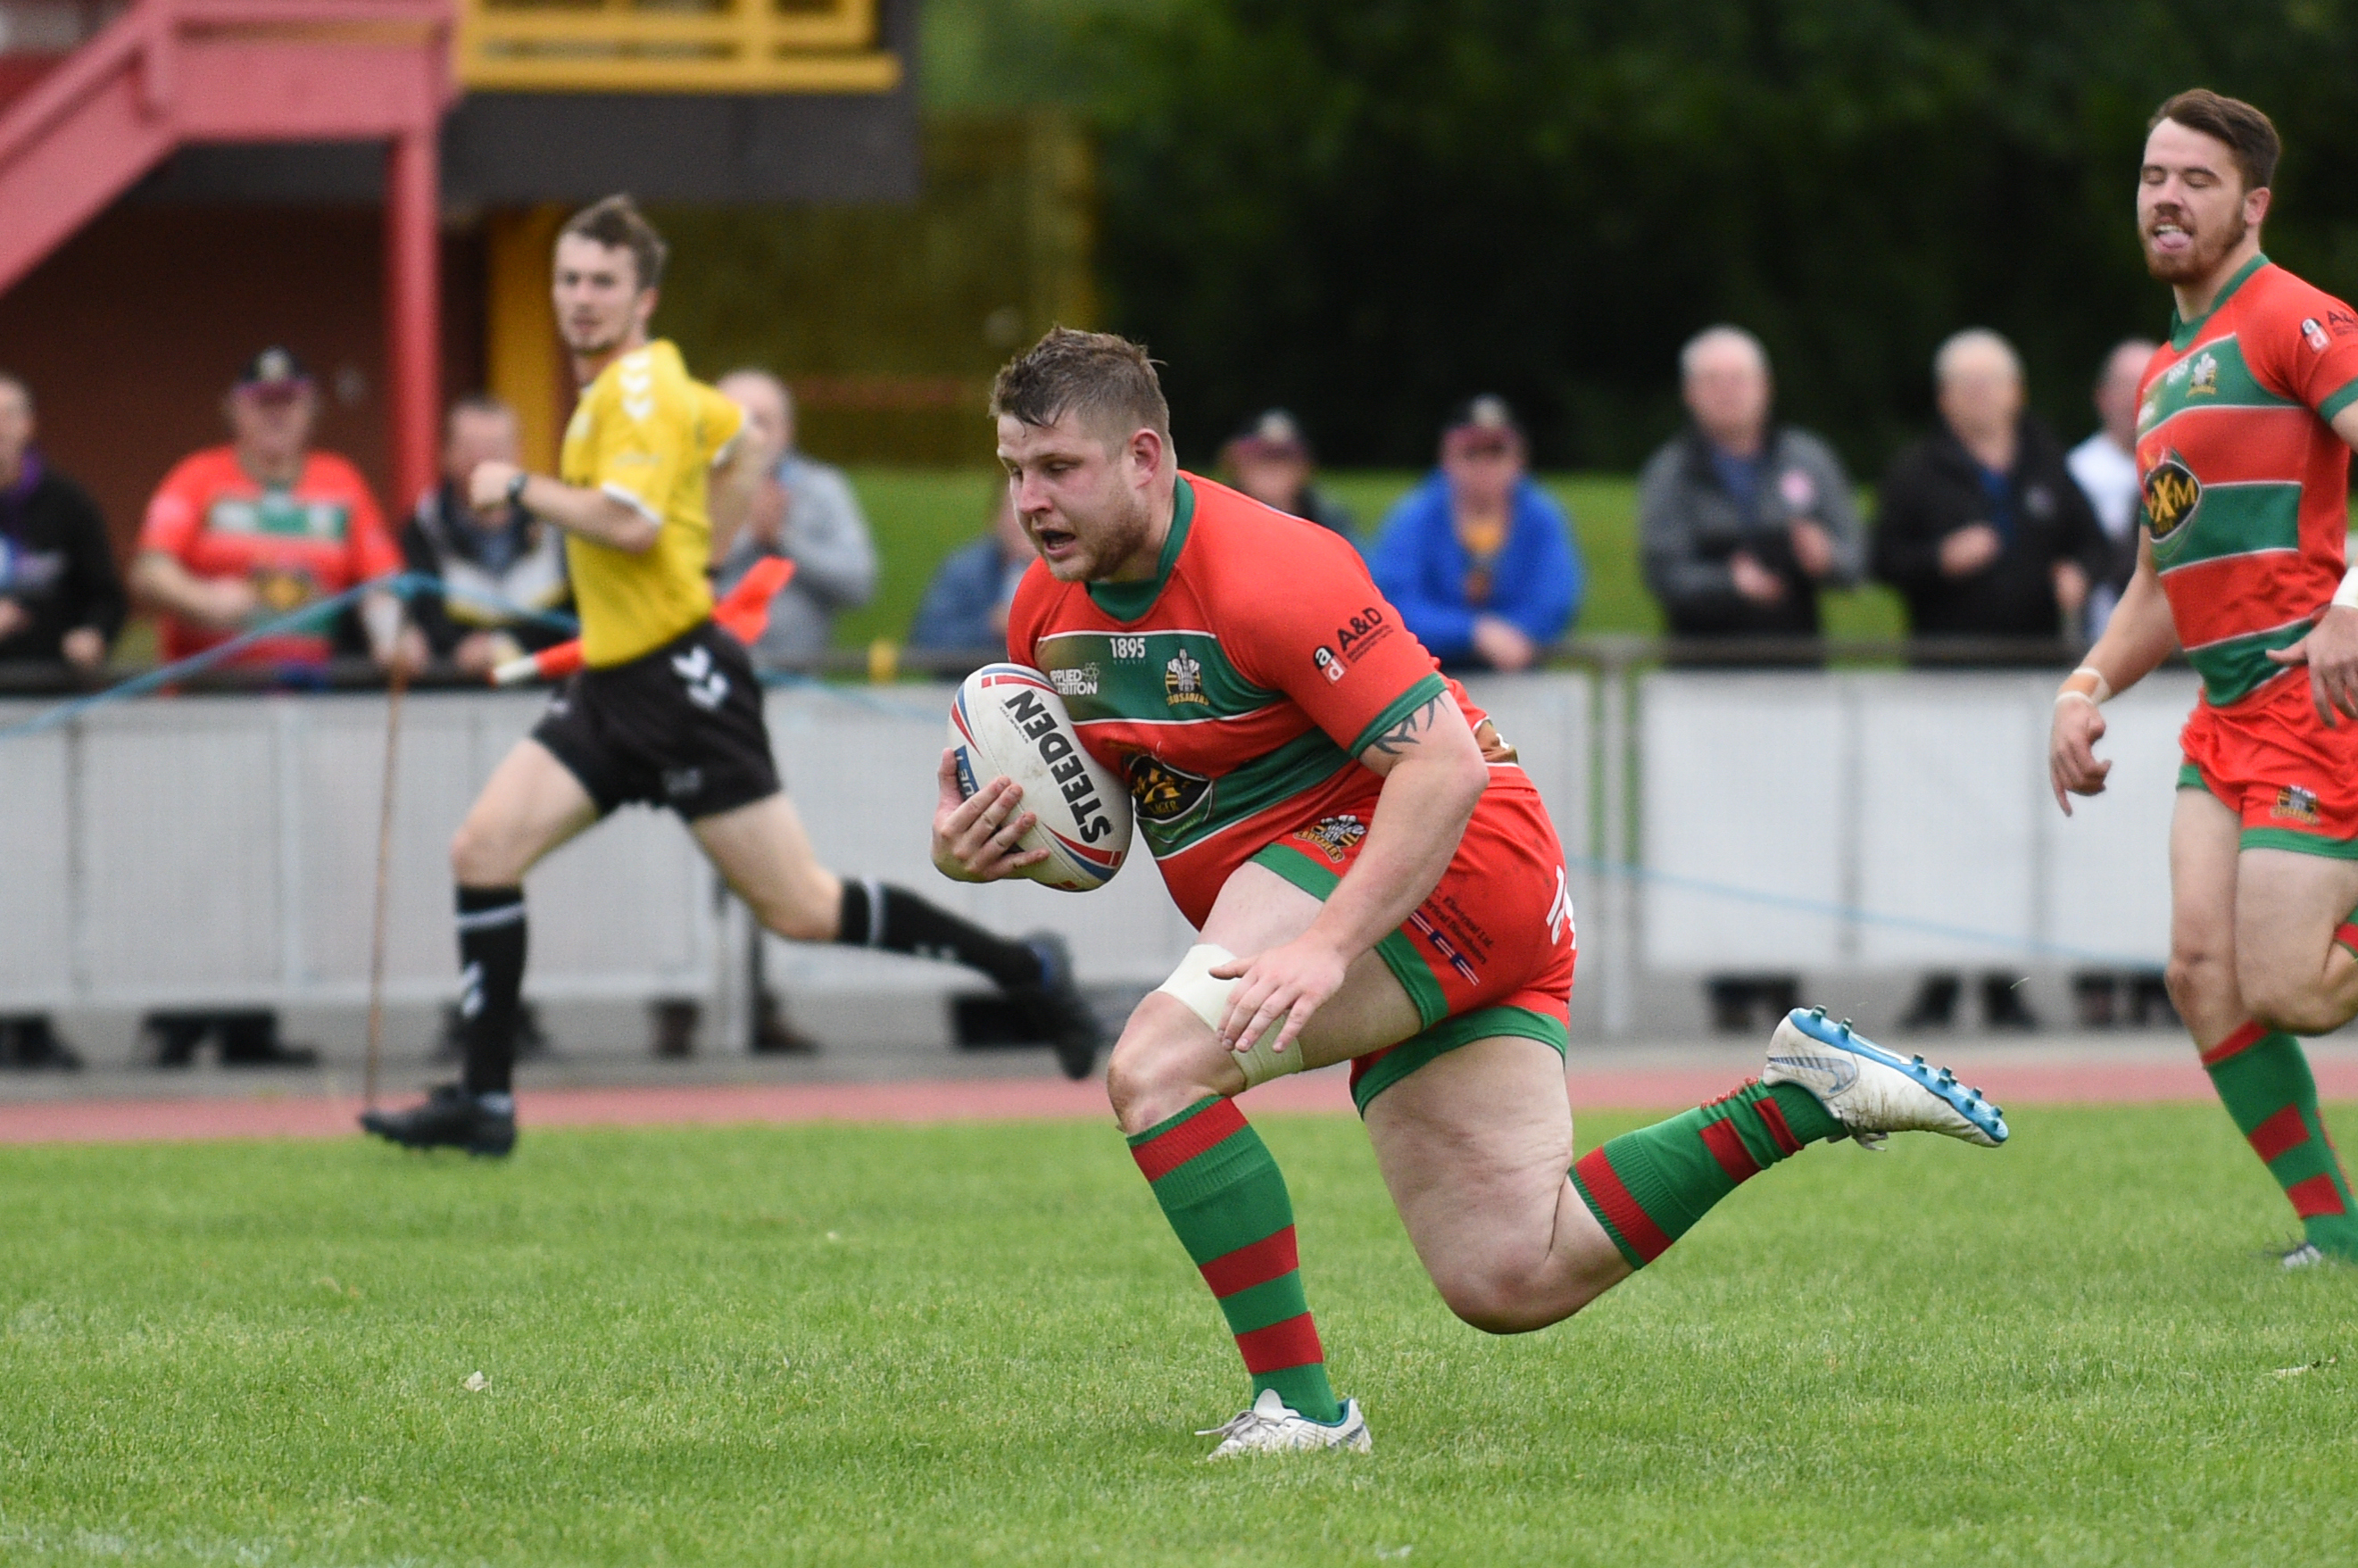 Report: North Wales Crusaders 33-16 Coventry Bears